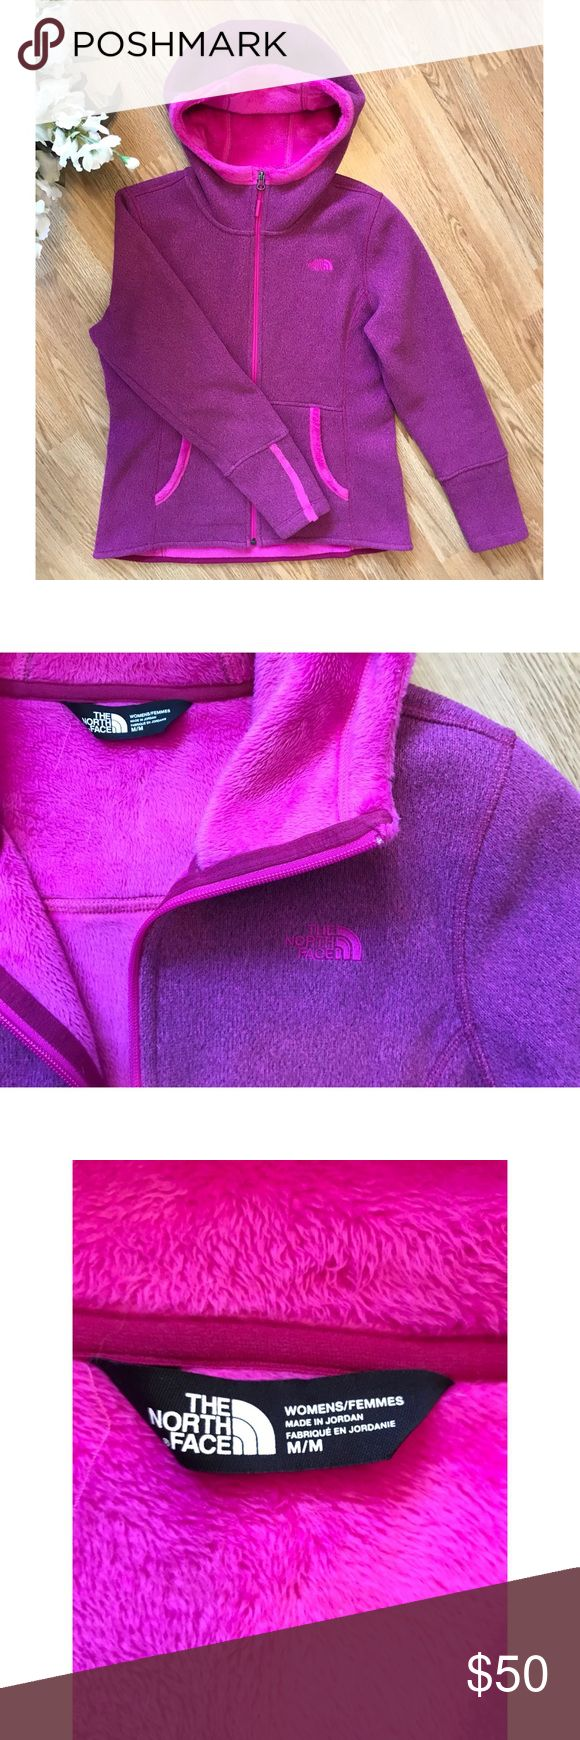 The North Face zip up hoodie. LIKE NEW! The North Face, pink/purple, zip up, fleece. In great condition! Worn maybe a handful of times. Size medium. The North Face Tops Sweatshirts & Hoodies